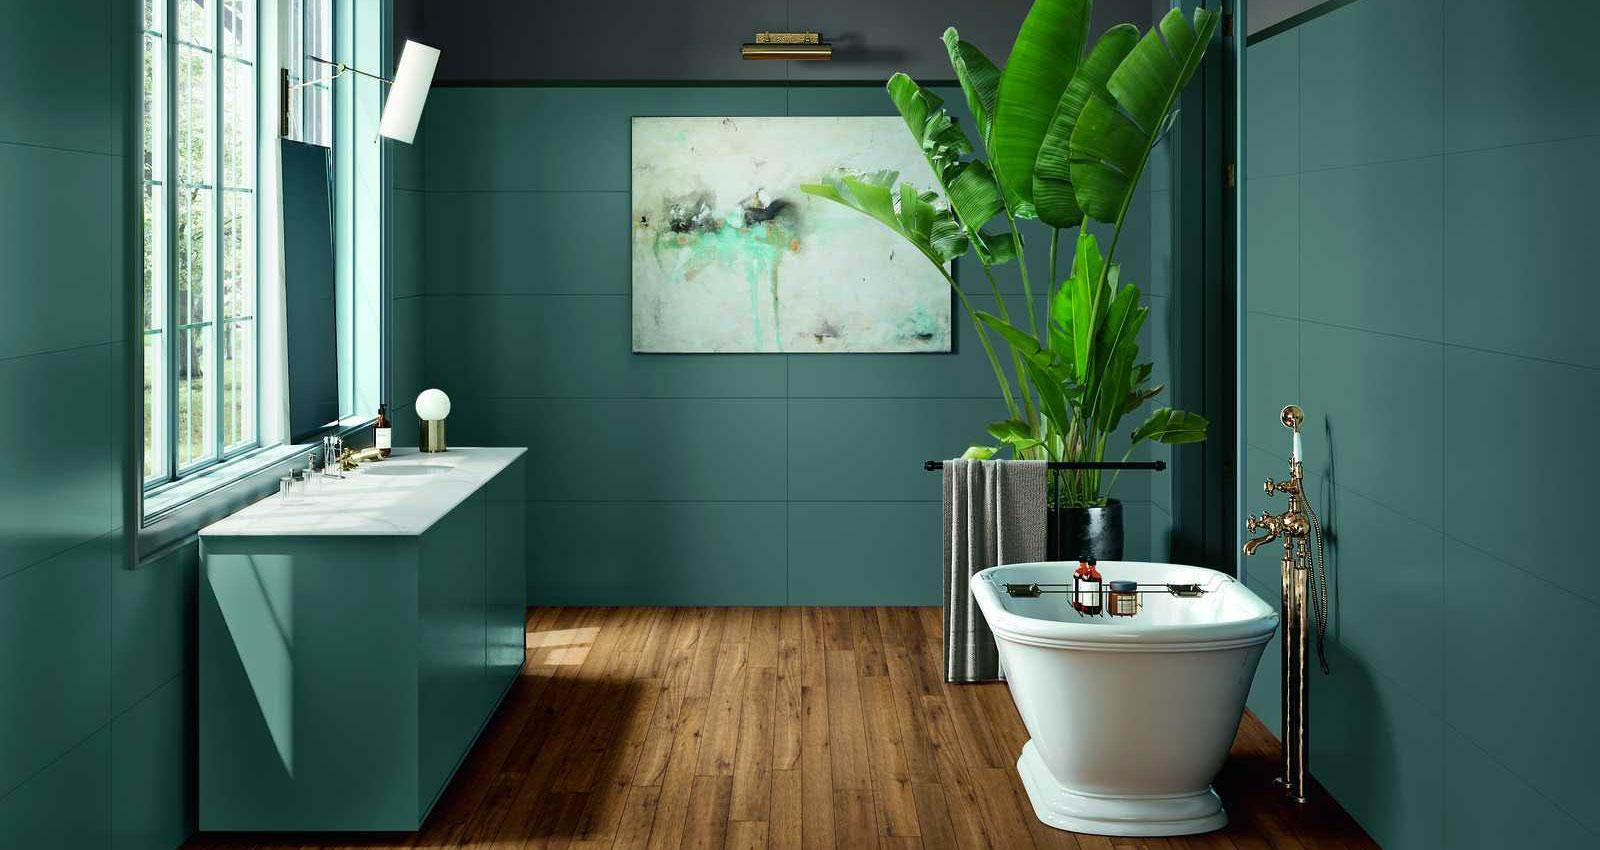 Marazzi_Eclettica Tiles dublin waterloo bathrooms commercial contracts ireland supply and fit luxury.jpg